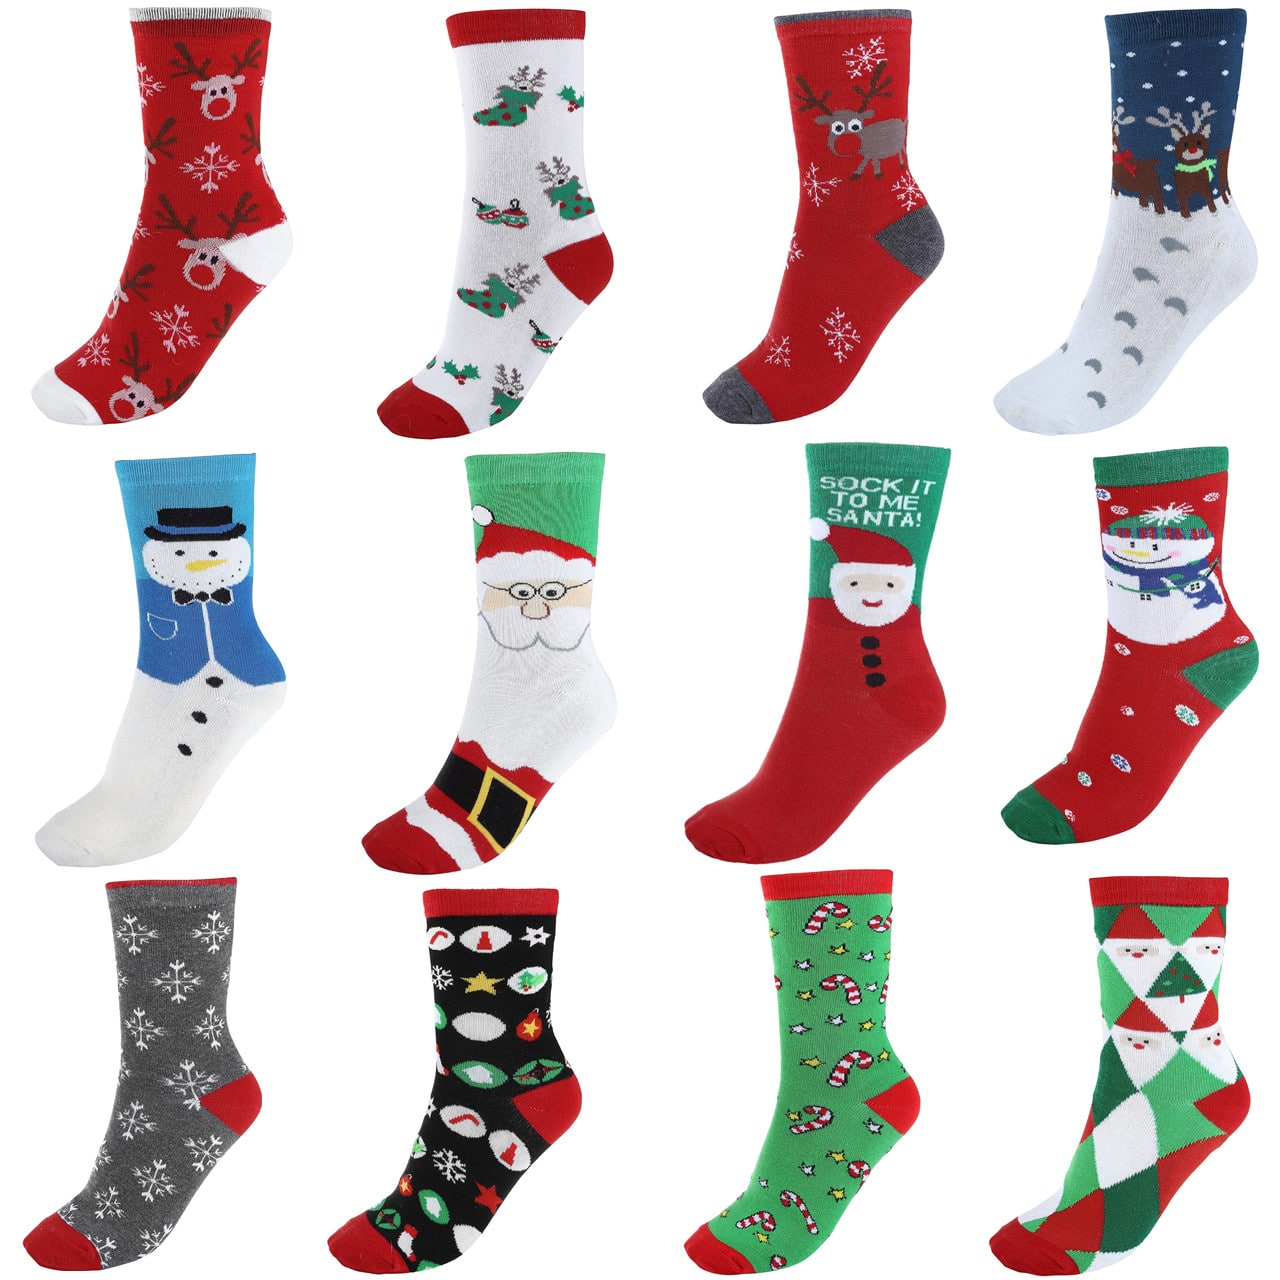 Update  $13.99 for 12Pairs Women's Cute Pattern Colorful Cotton Xmas Crew Socks,Christmas Style Mom